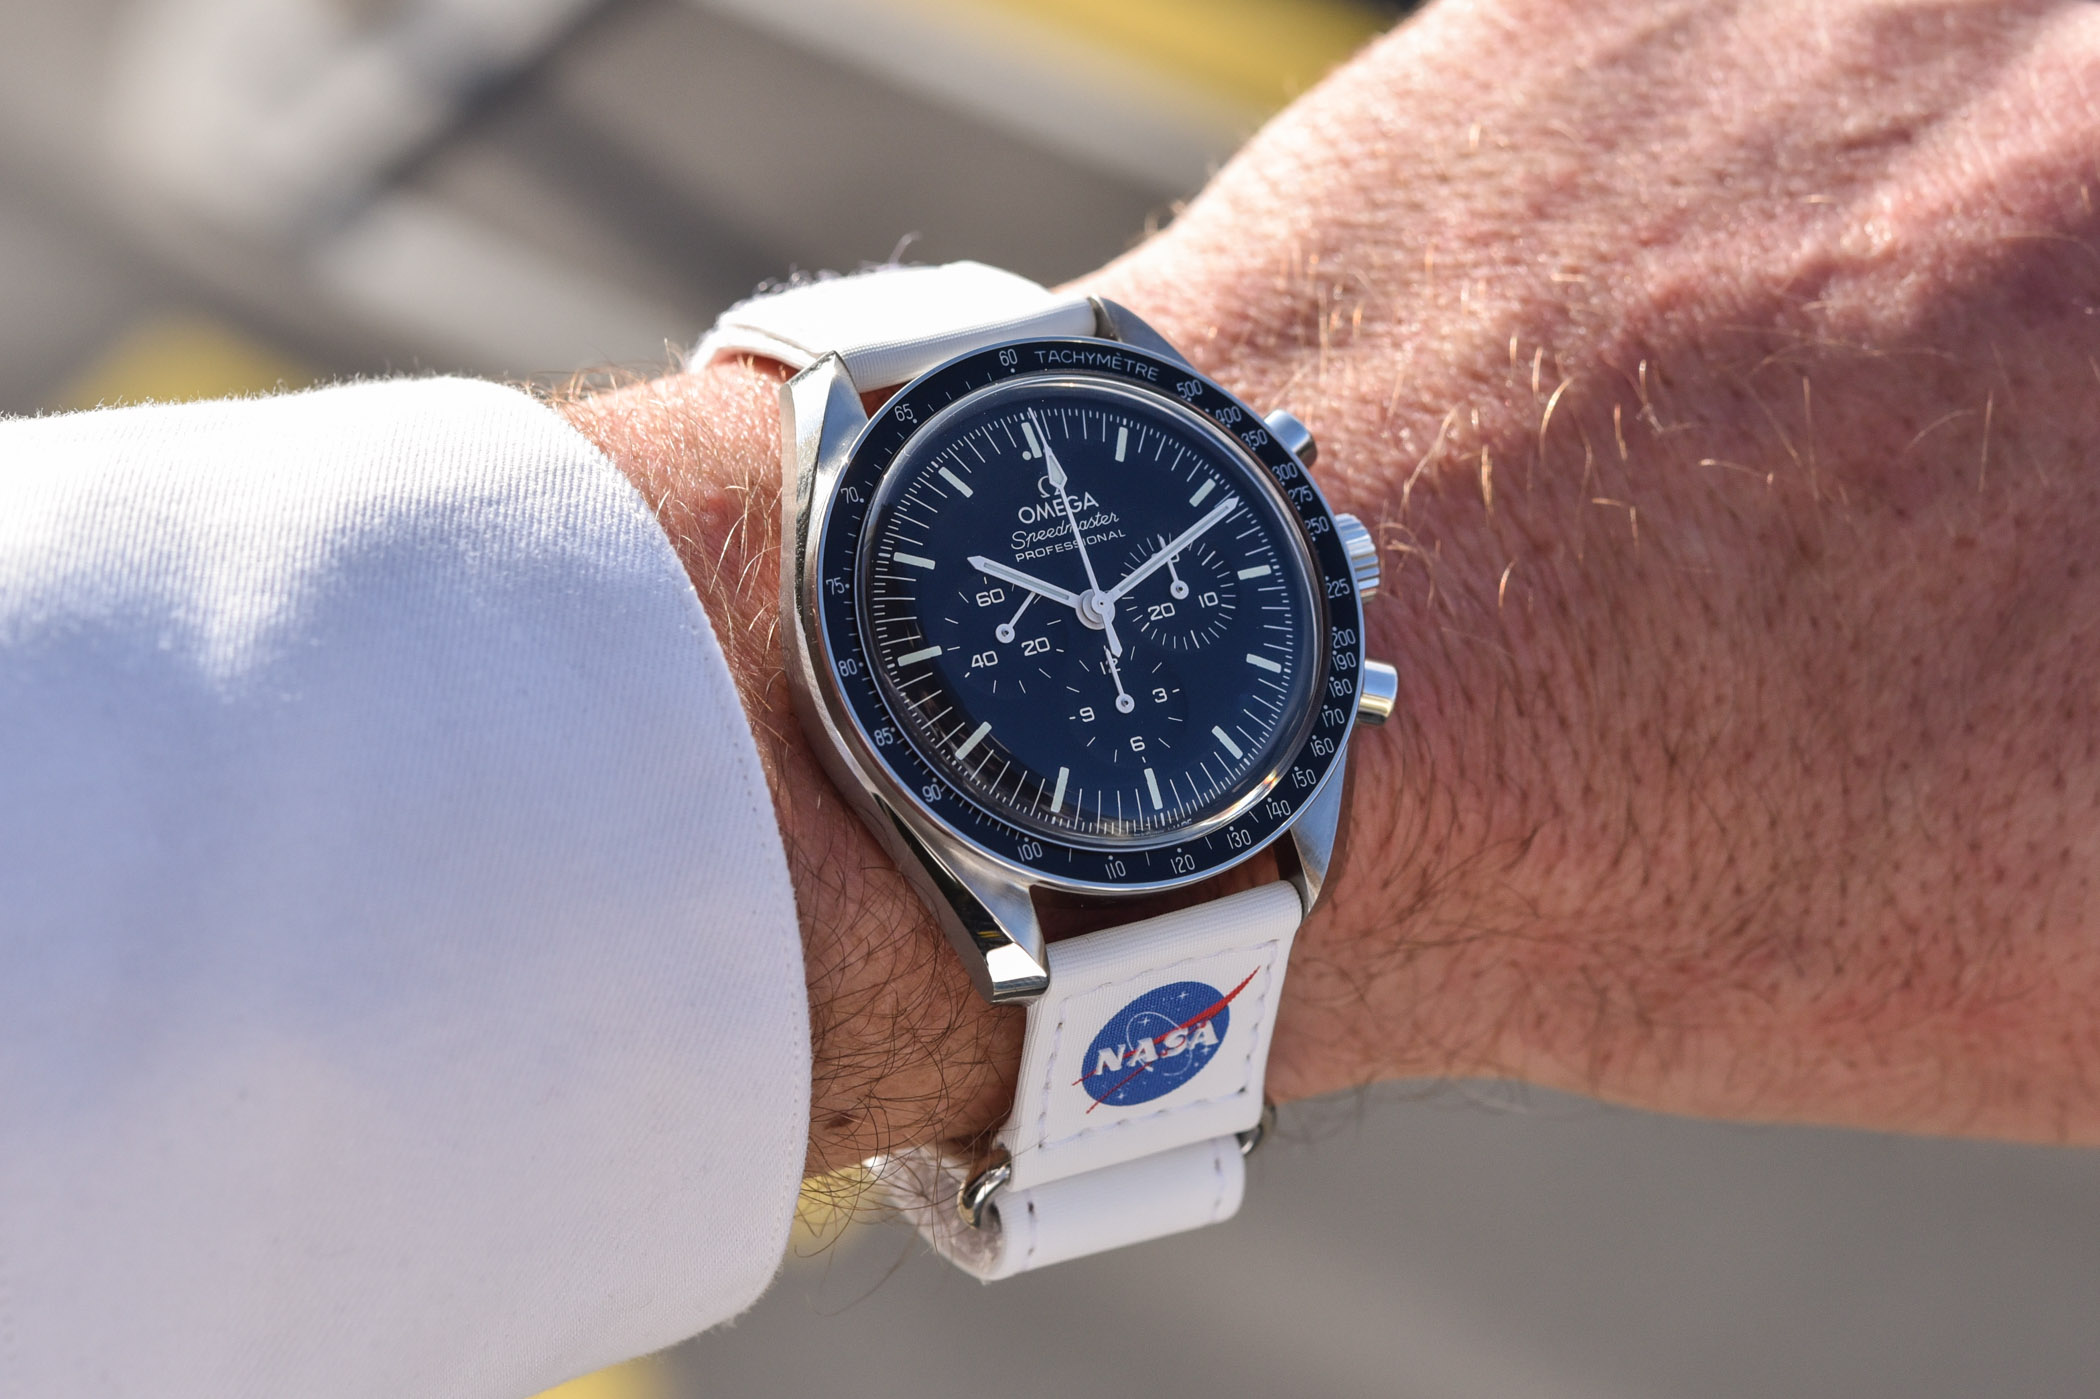 New NASA Velcro Straps for the Omega Speedmaster Moonwatch